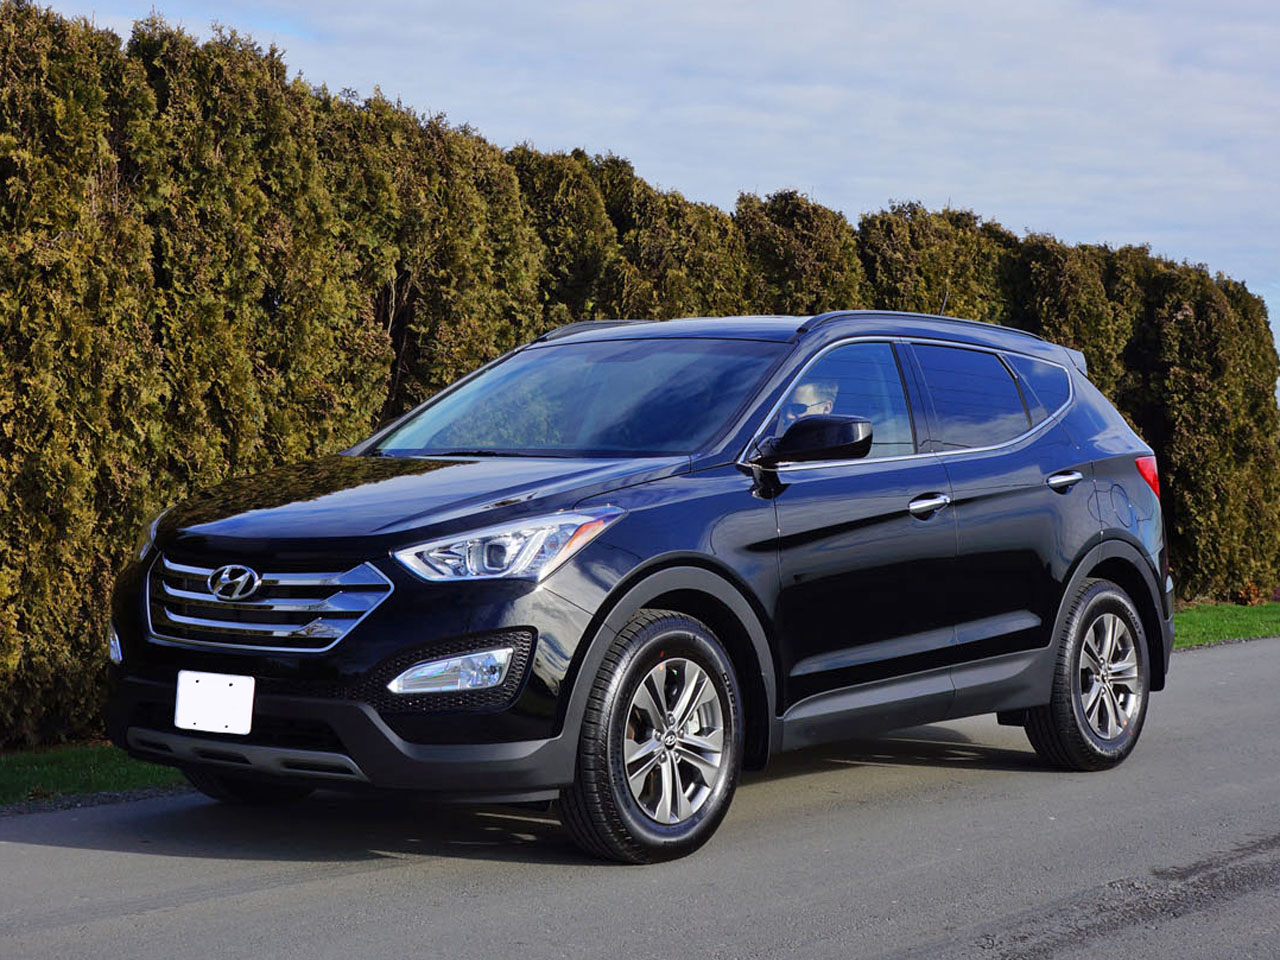 2015 hyundai santa fe sport 2 0t premium awd road test. Black Bedroom Furniture Sets. Home Design Ideas